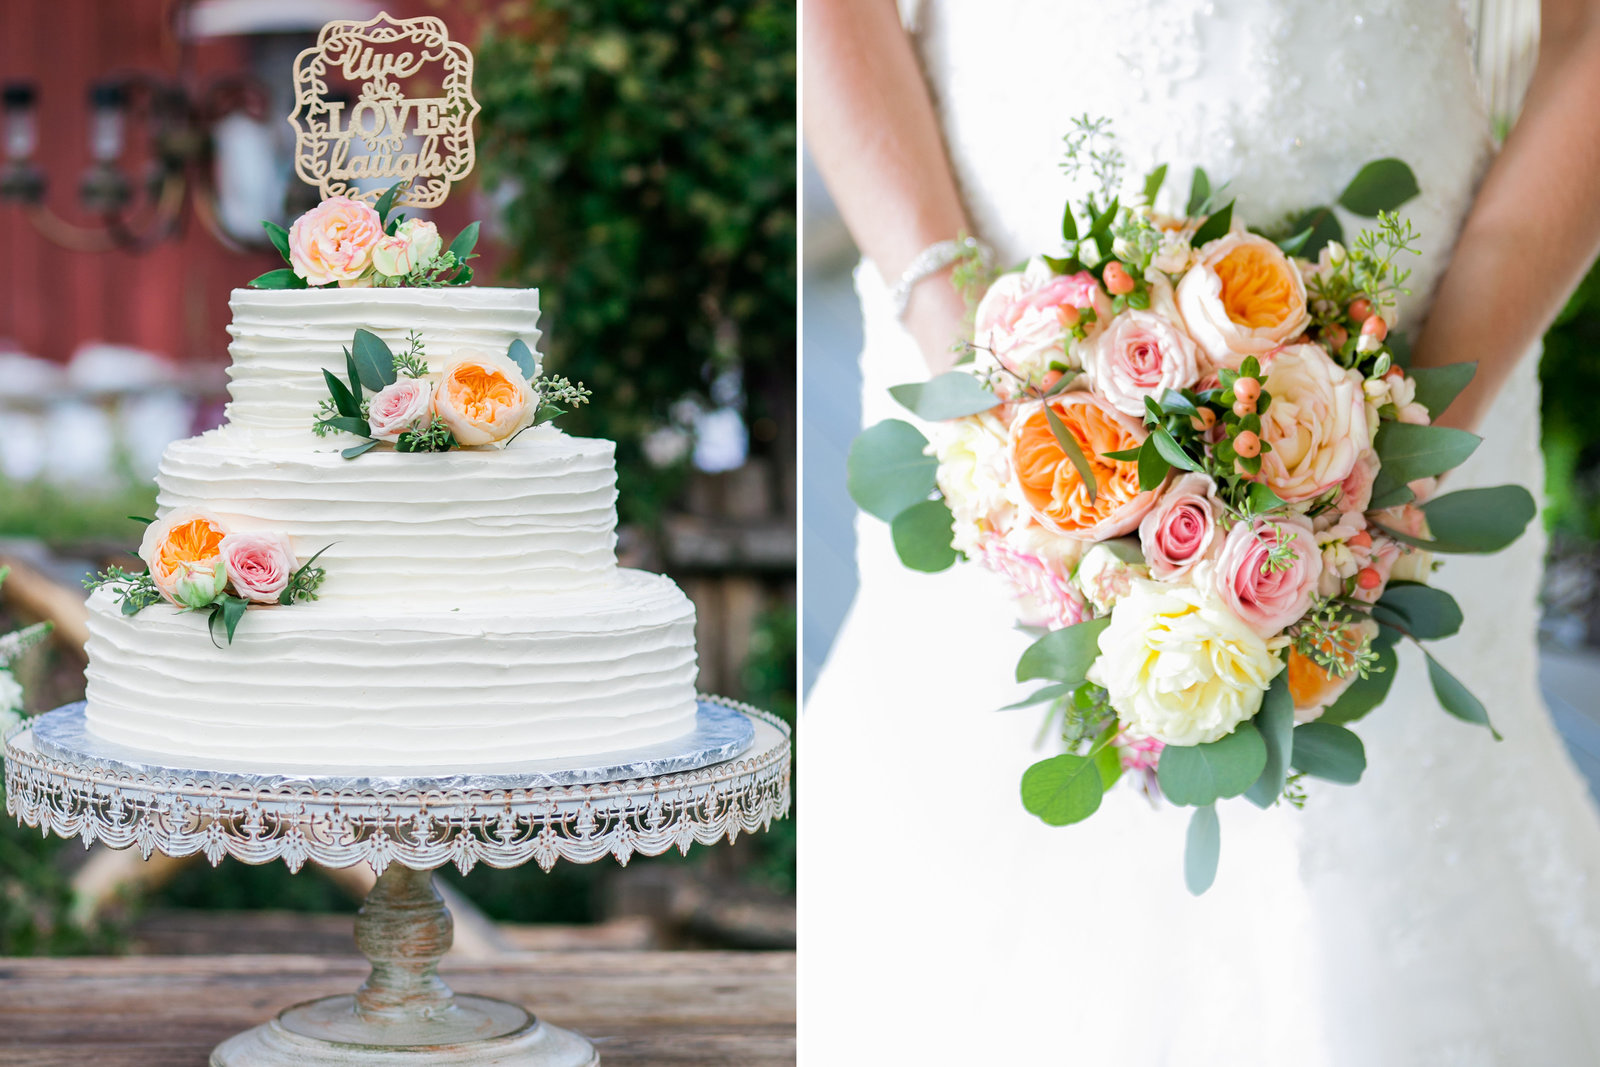 photo of wedding details, blush and pink wedding cake and bouquet | Susie Moreno Photography